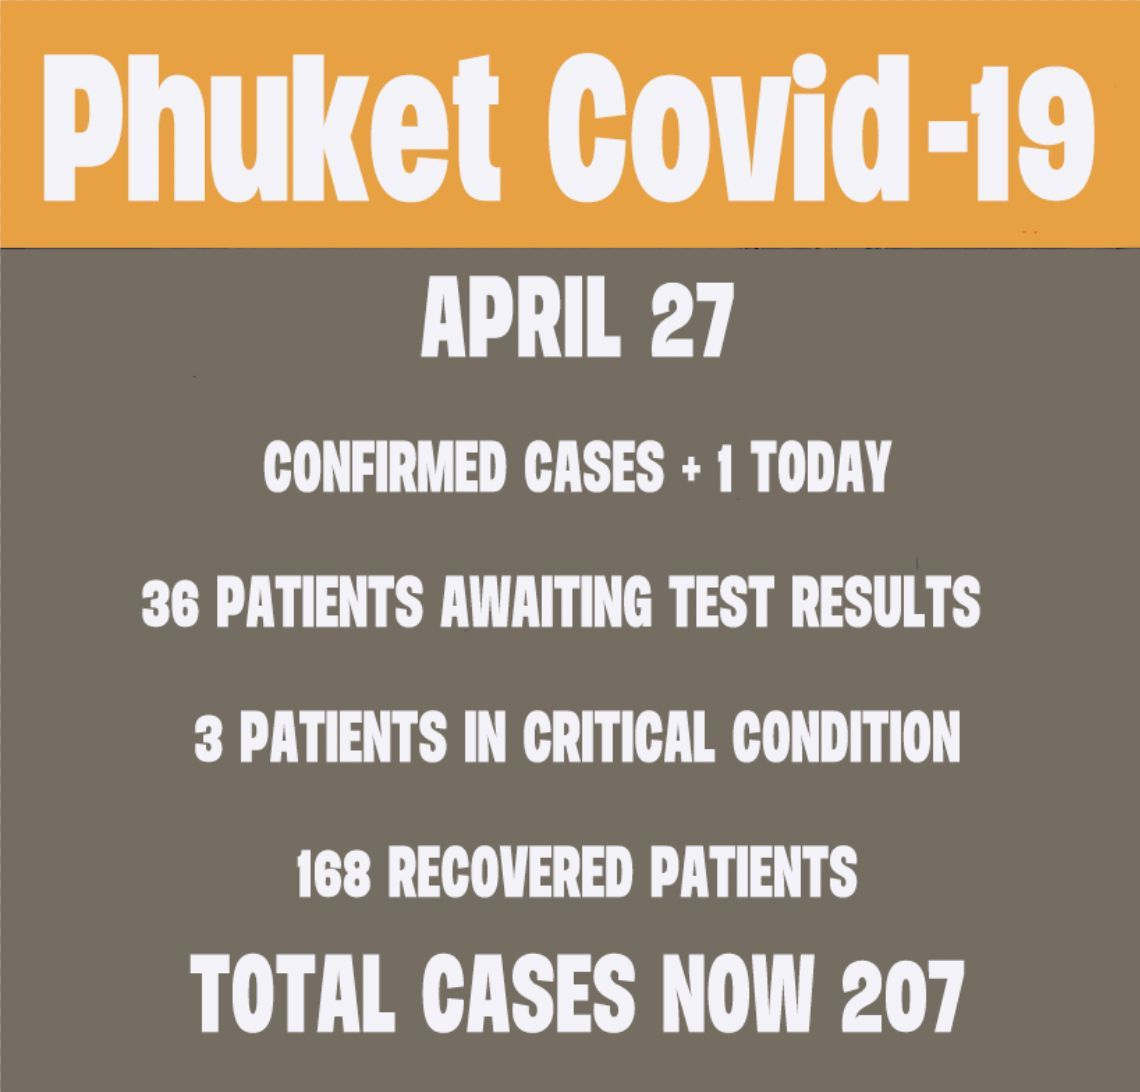 Phuket's new Covid-19 cases today (Monday) | News by Thaiger